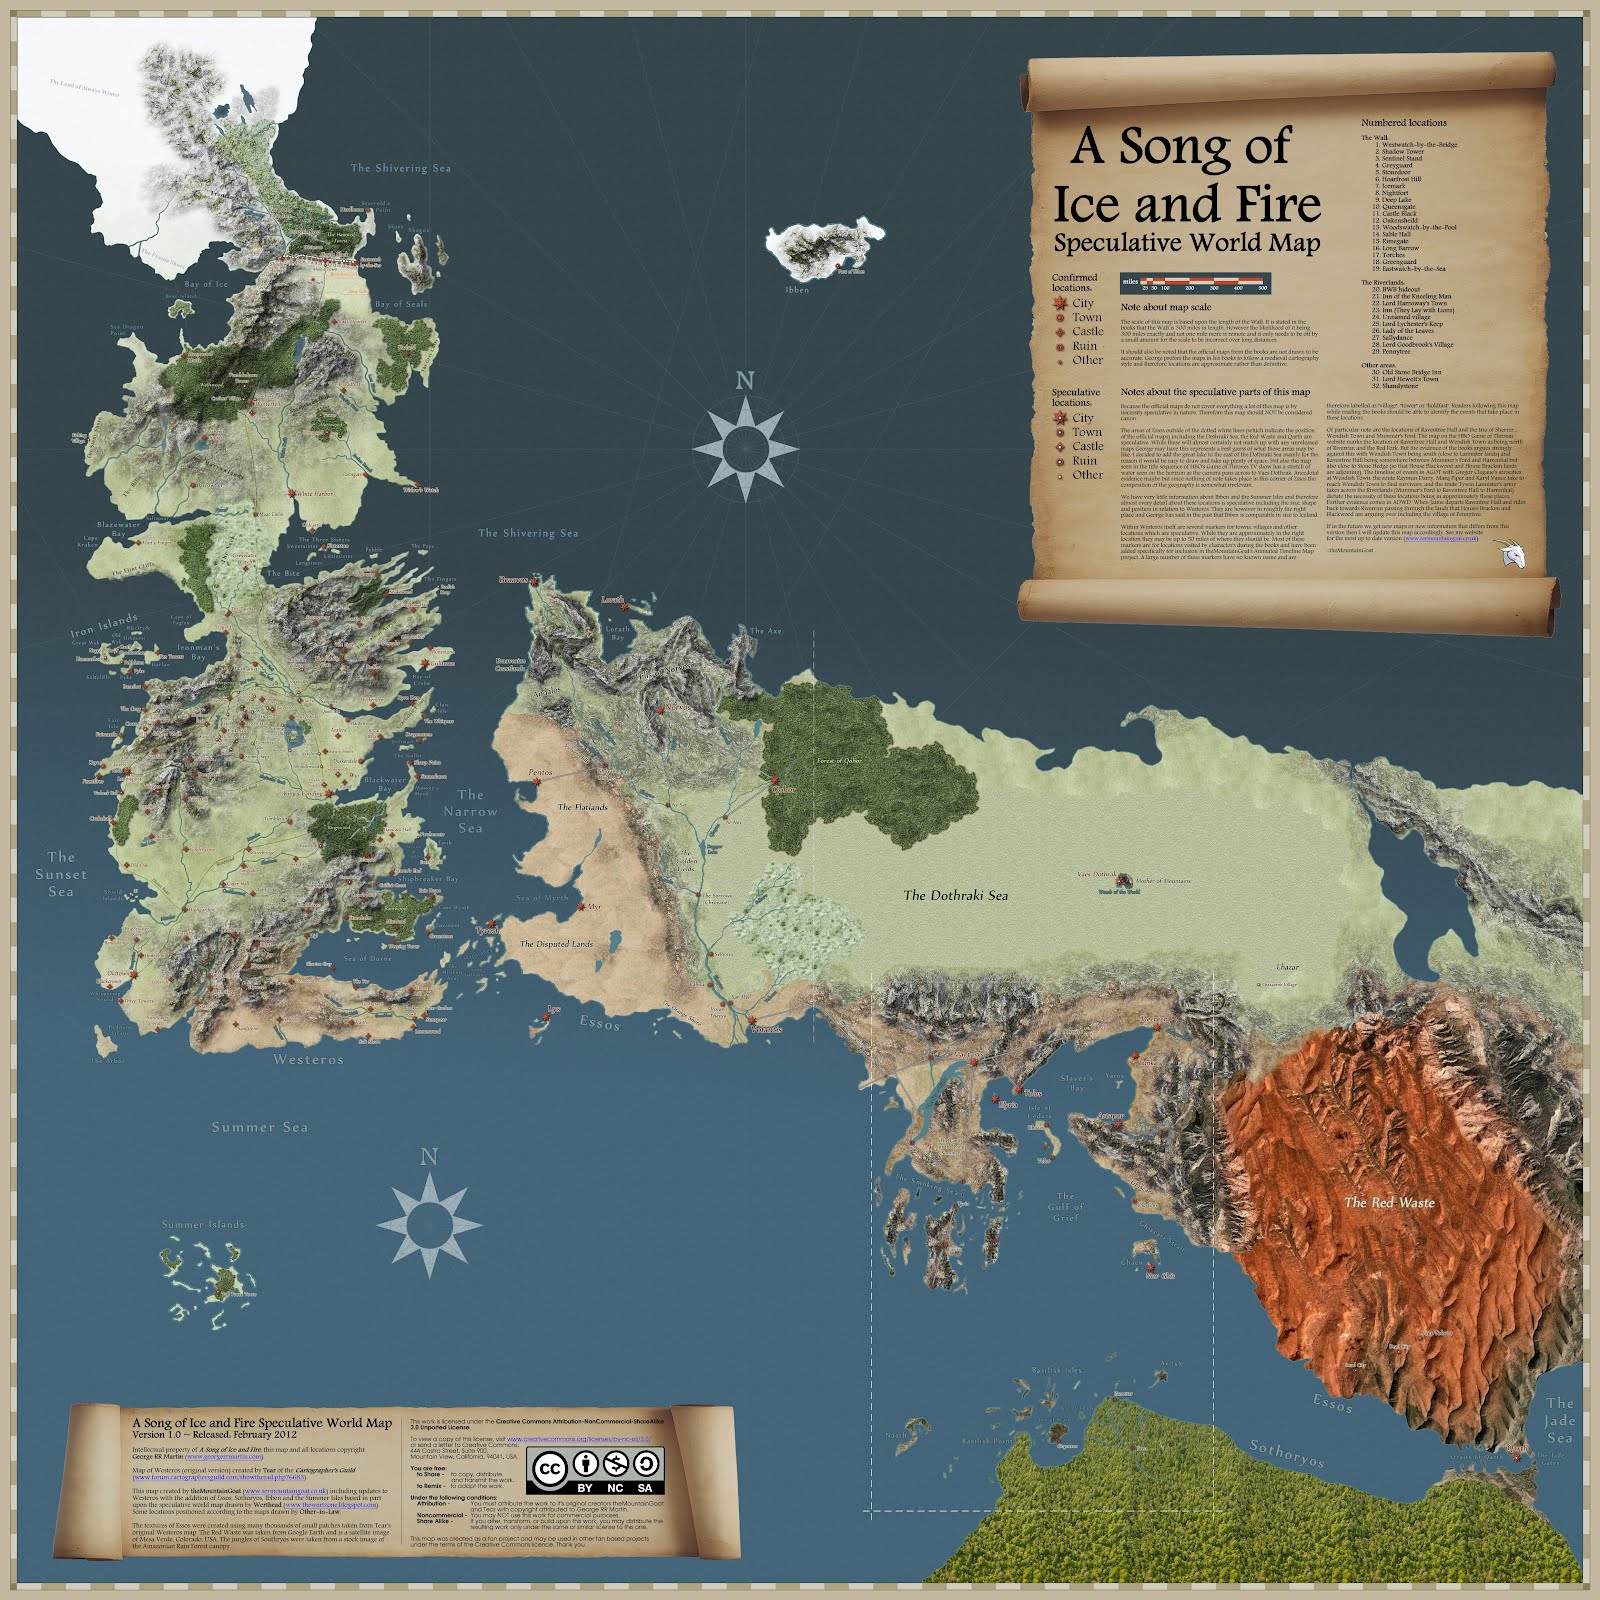 The Most Complete Asoiaf World Map Yet